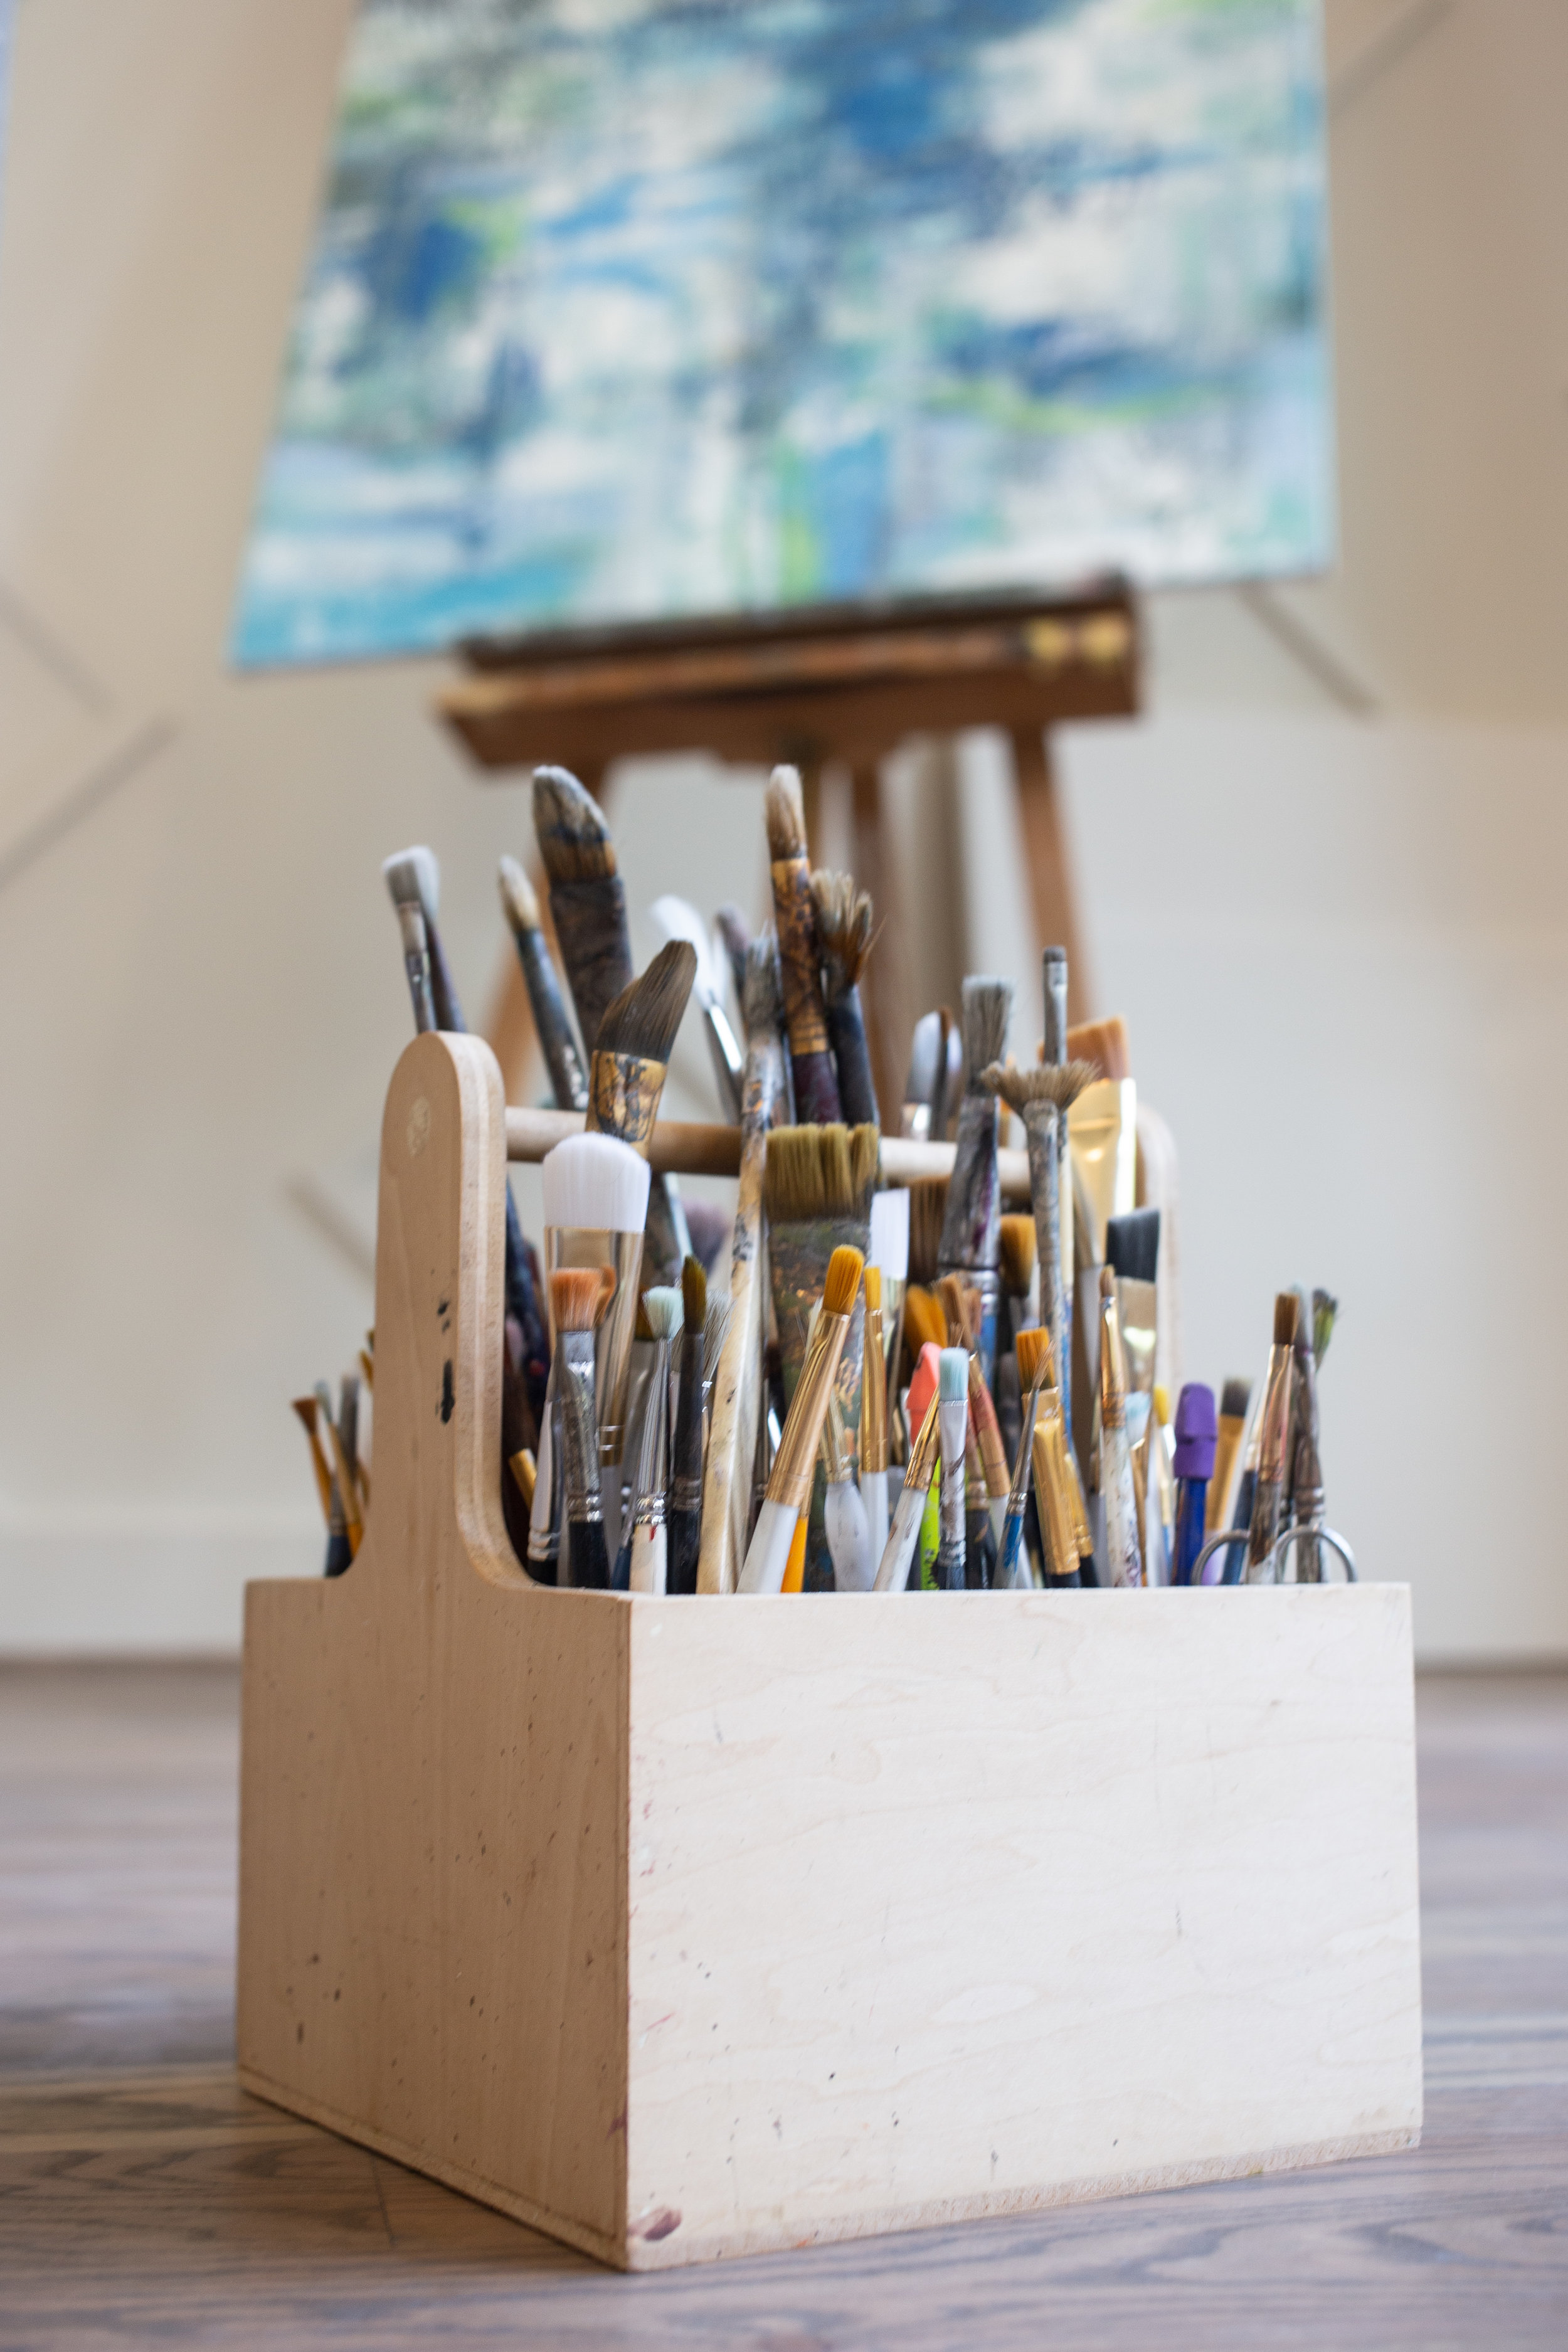 Learn to paint - Our art workshops are designed to help inspire you to create your own master pieces.Draw with charcoal, make an abstract, florals, landscapes, cityscapes, try palette knife, or focus on waterfalls. Choose a reference painting you like, we would love to provide the materials with instructions. For adults but teens are welcome.